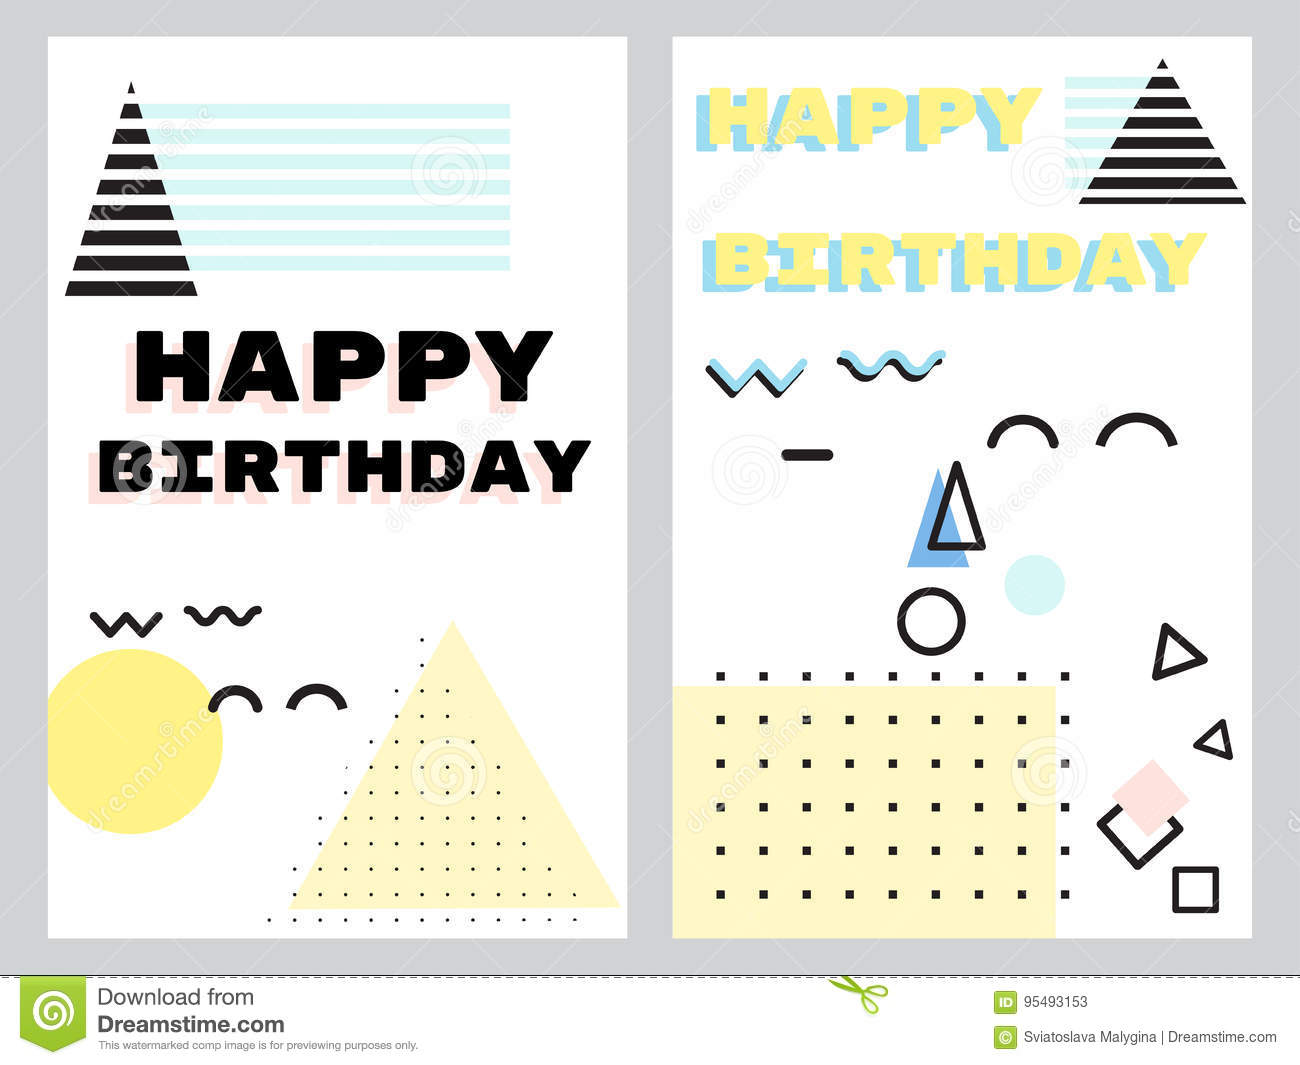 A set of greeting cards in the neo Memphis style